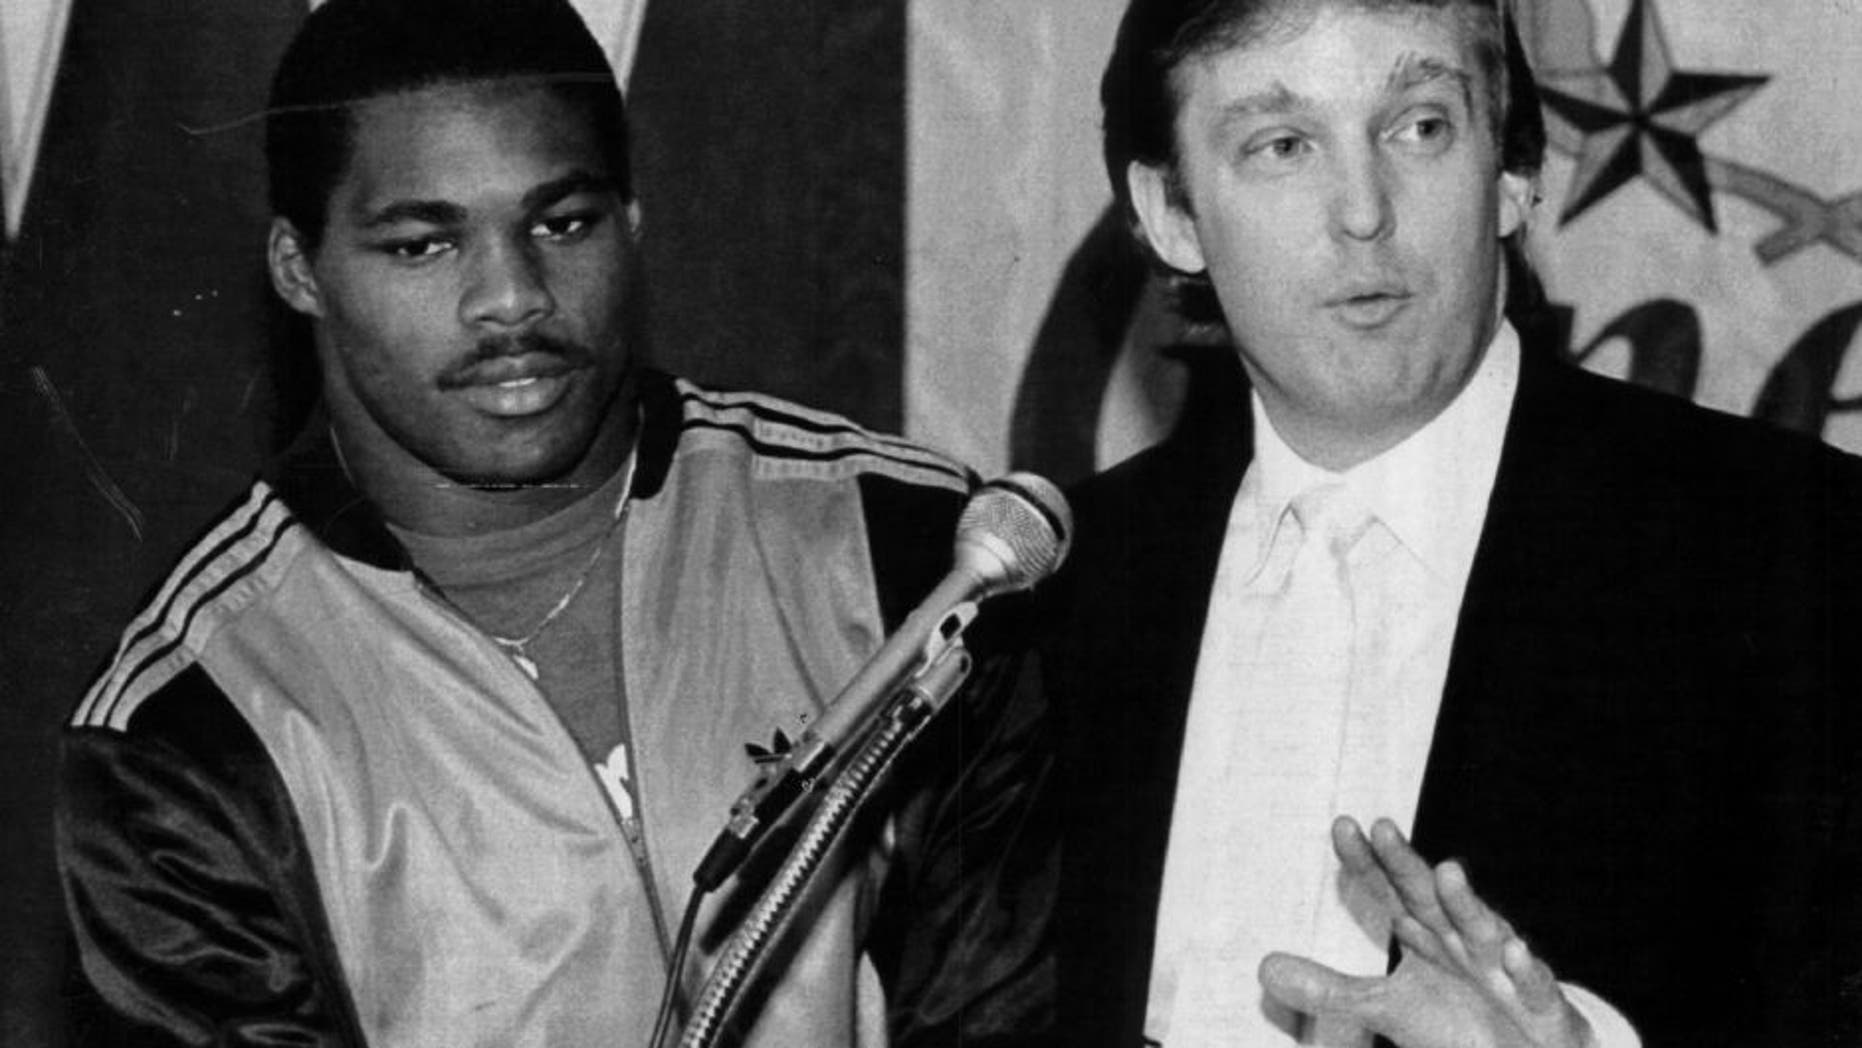 EAST RUTHERFORD, NJ - CIRCA 1983: Team Owner Donald Trump announces he has signed Herschel Walker to play running back for the New Jersey Generals in New Jersey. Walker played for the General form 1983-85. (Photo by Sporting News via Getty Images)